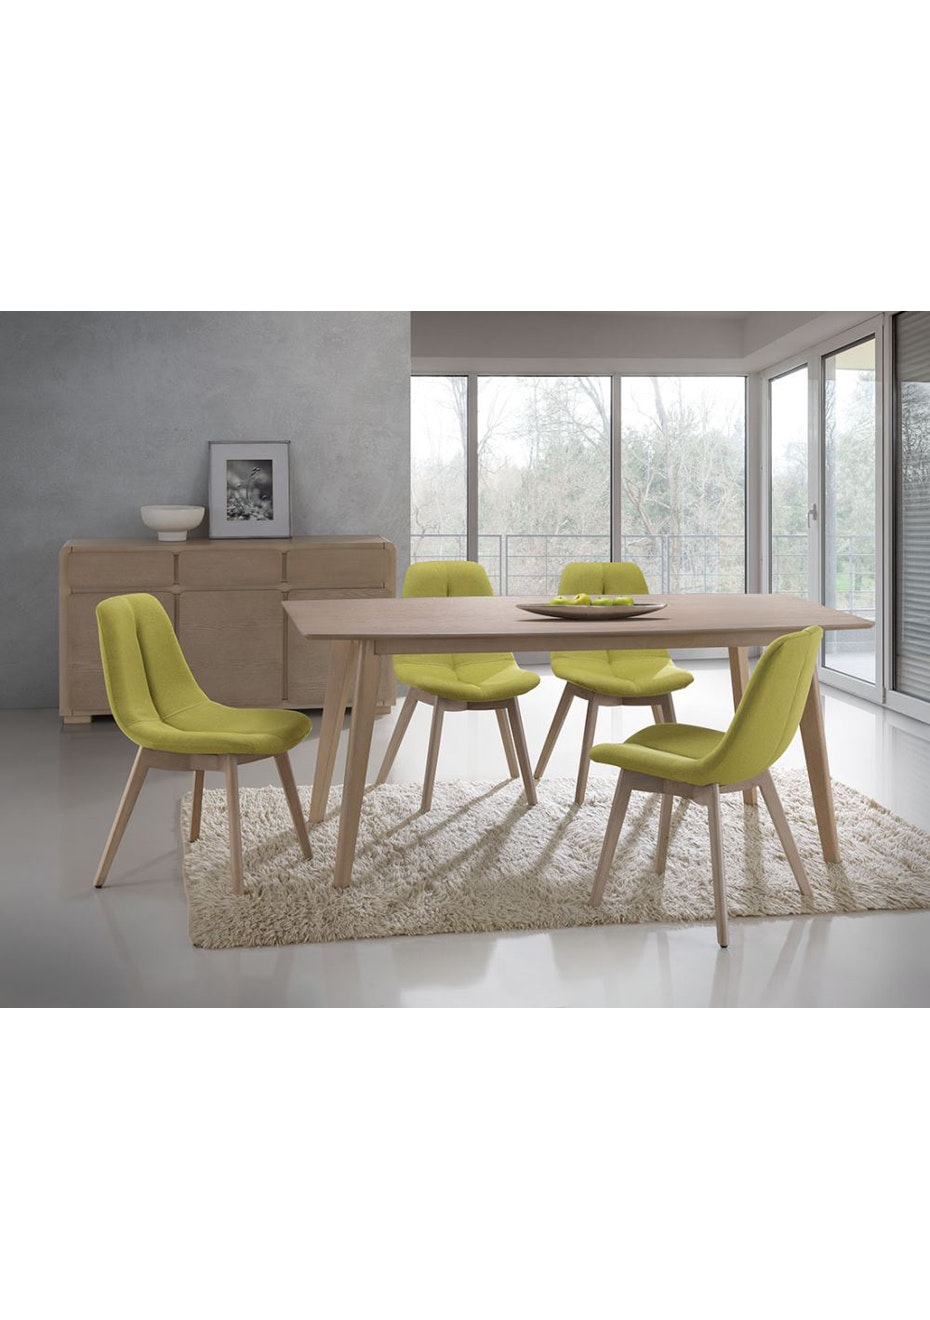 Marnie Dining Table